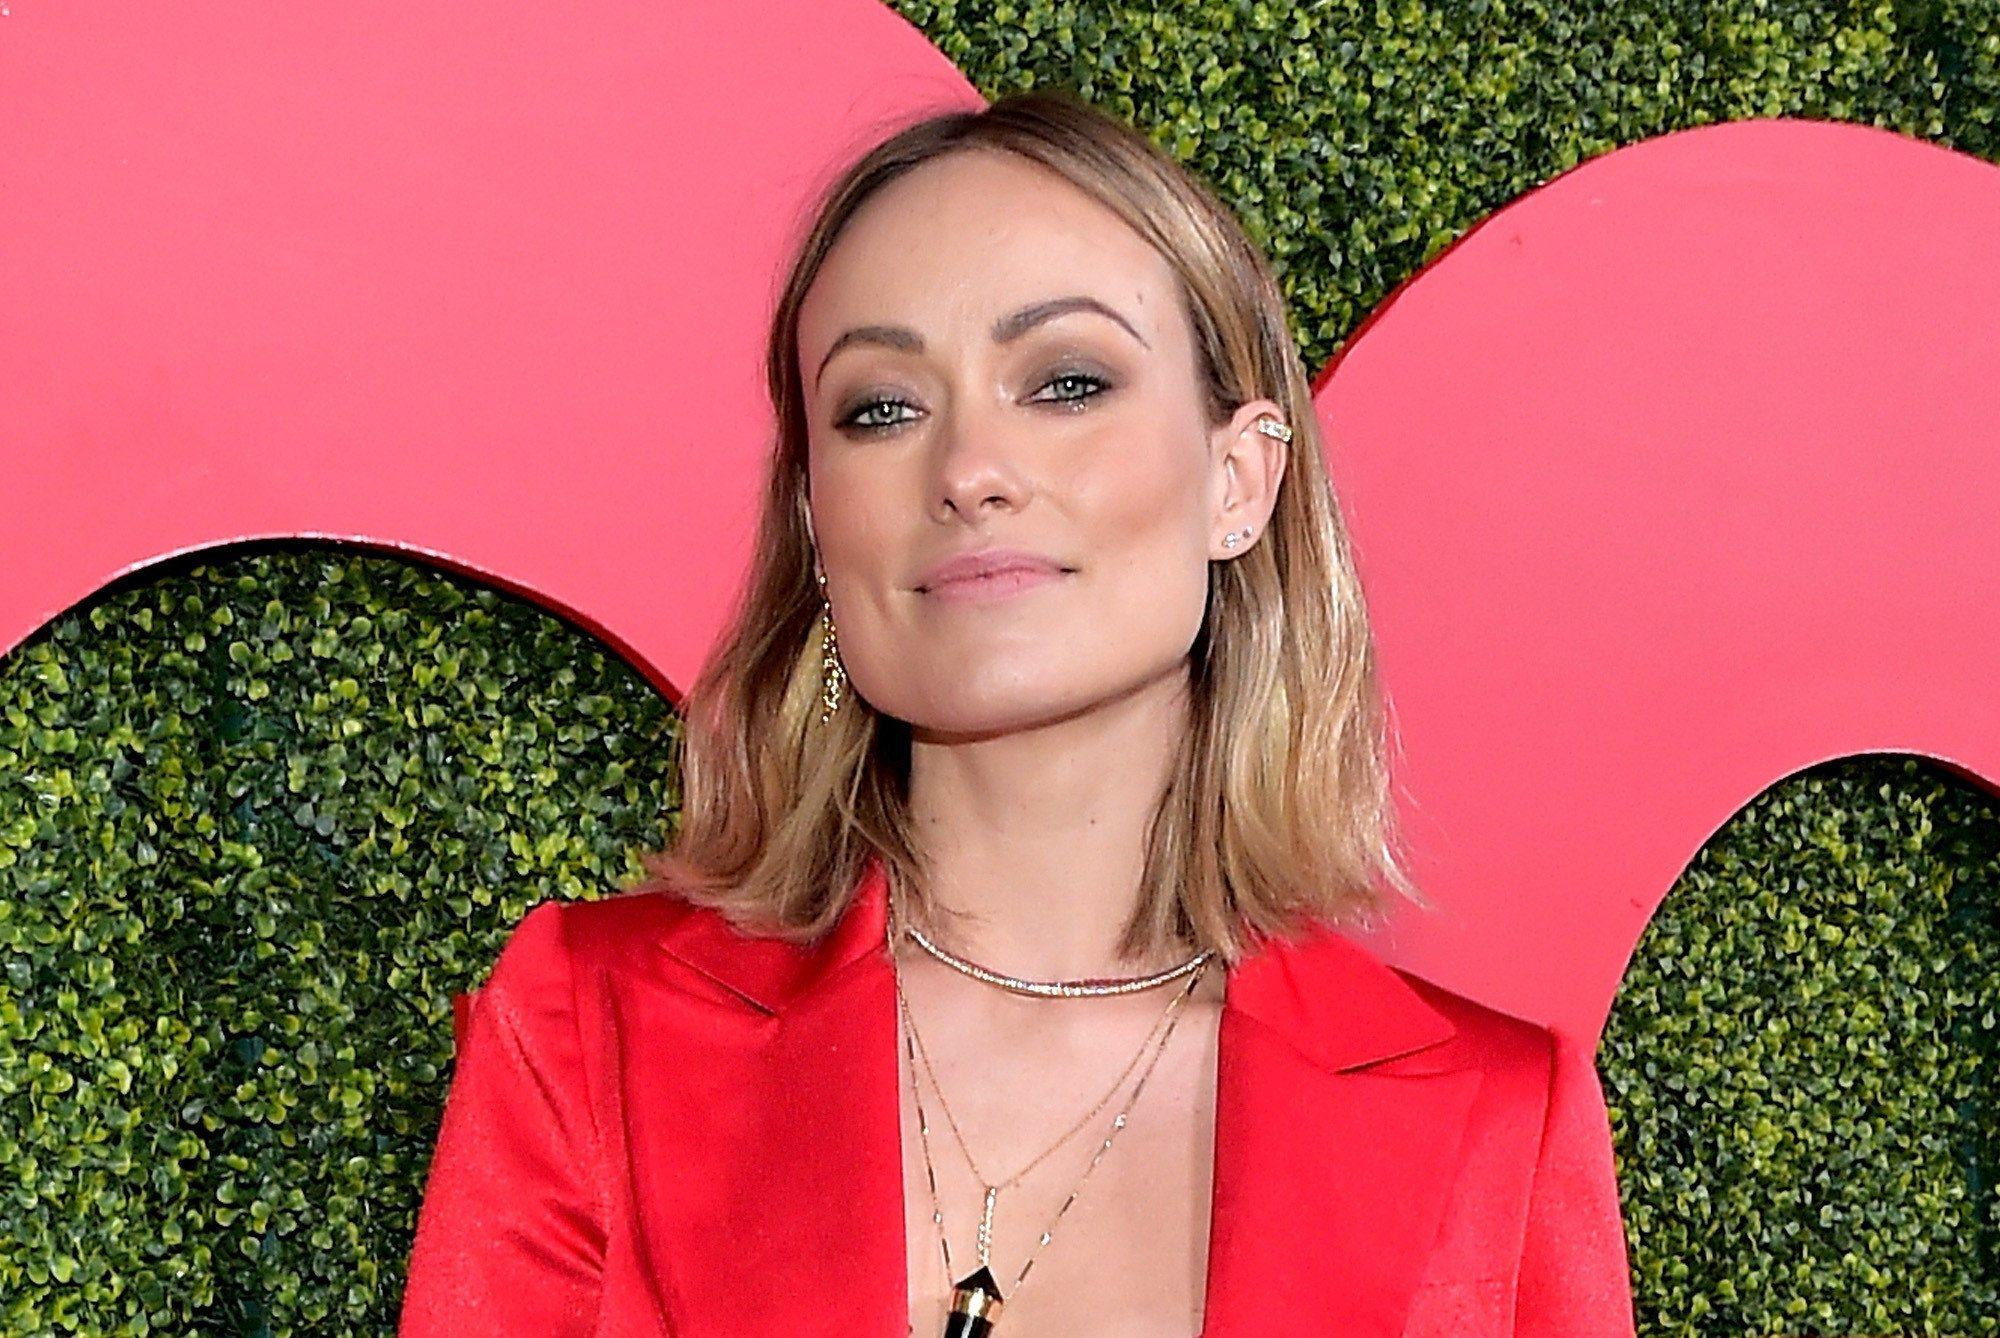 Olivia Wilde wore a bra as a shirt at the GQ Men of the Year Party